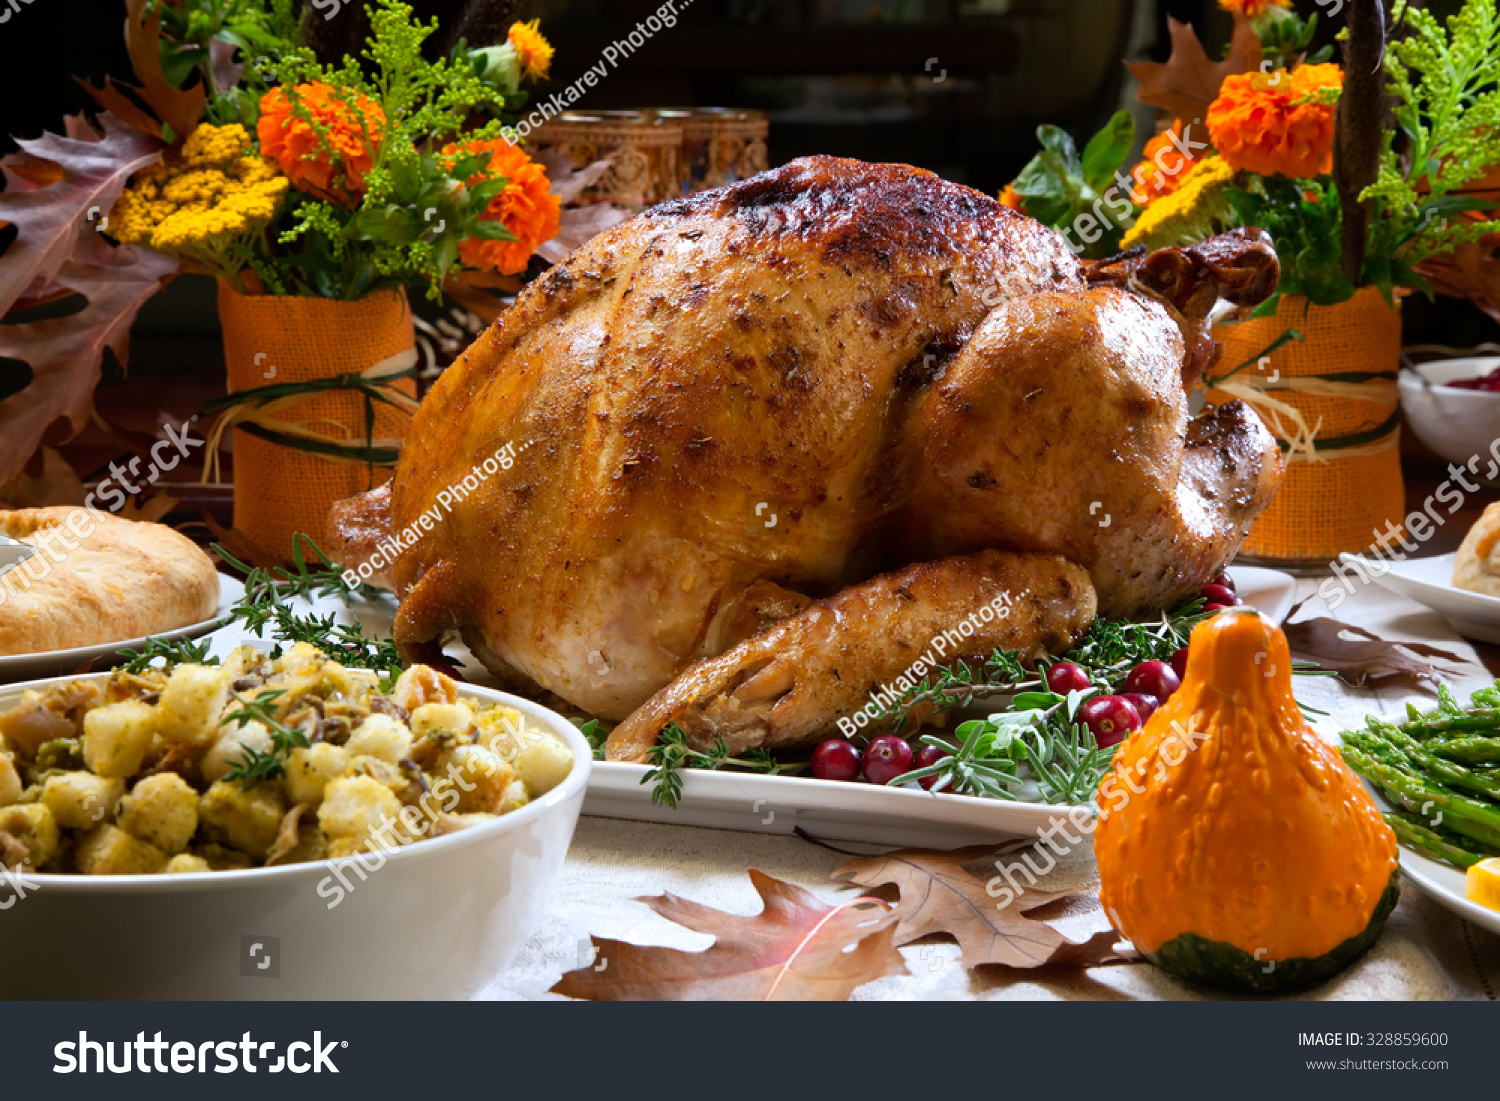 Roasted Turkey Garnished Cranberries On Rustic Stock Photo ...